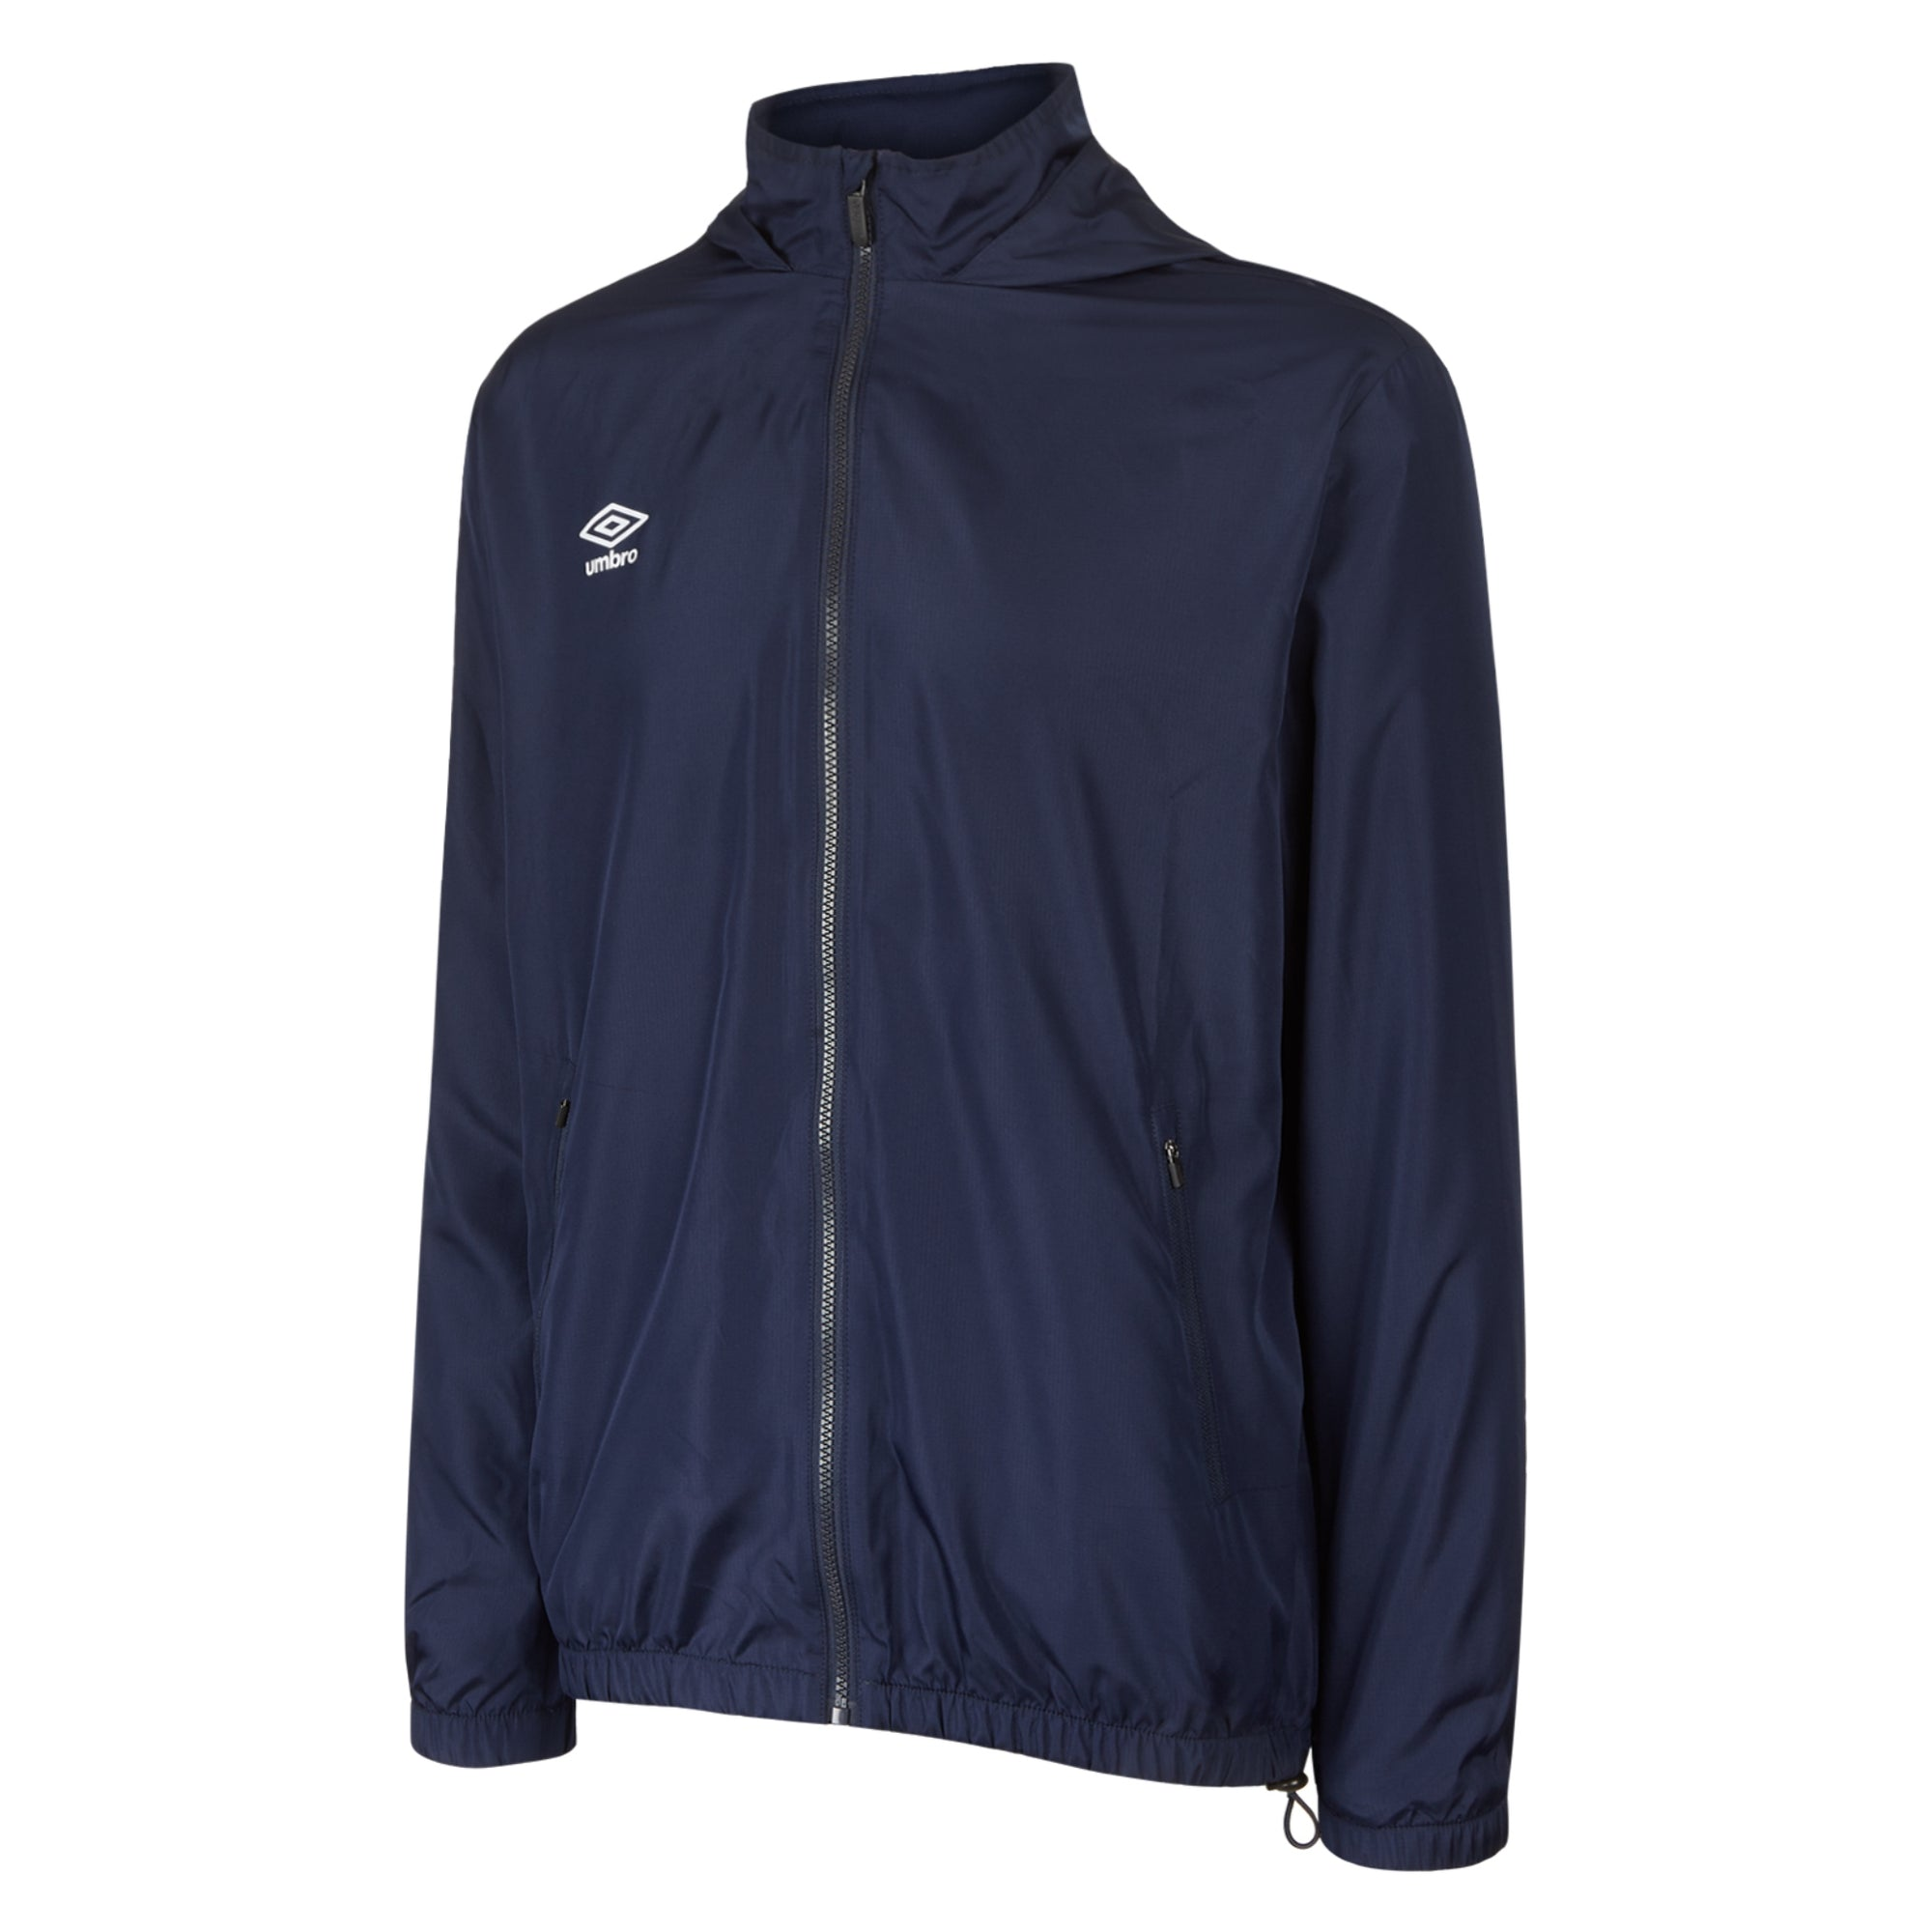 Umbro Club Essential Light Rain Jacket - Dark Navy